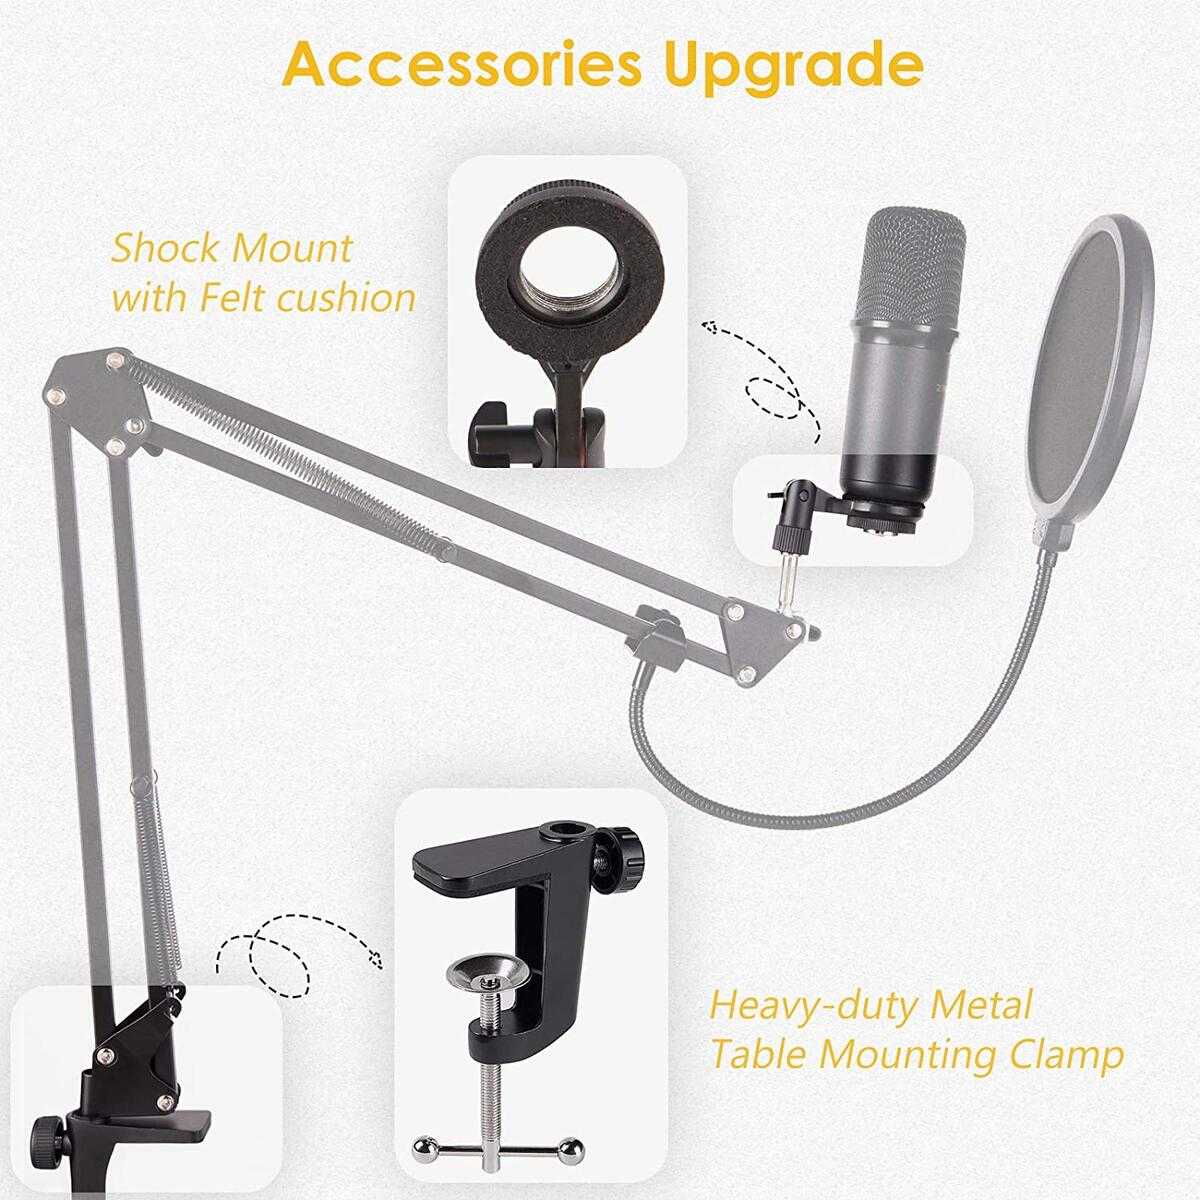 ZINGYOU USB Microphone Bundle ZY-UA1 PC Laptop Recording Condenser Mic Kit for Podcasting Gaming Streaming YouTube on macOS and Windows with Adjustable Scissor Arm Metal Shock Mount Pop Filter(Black)